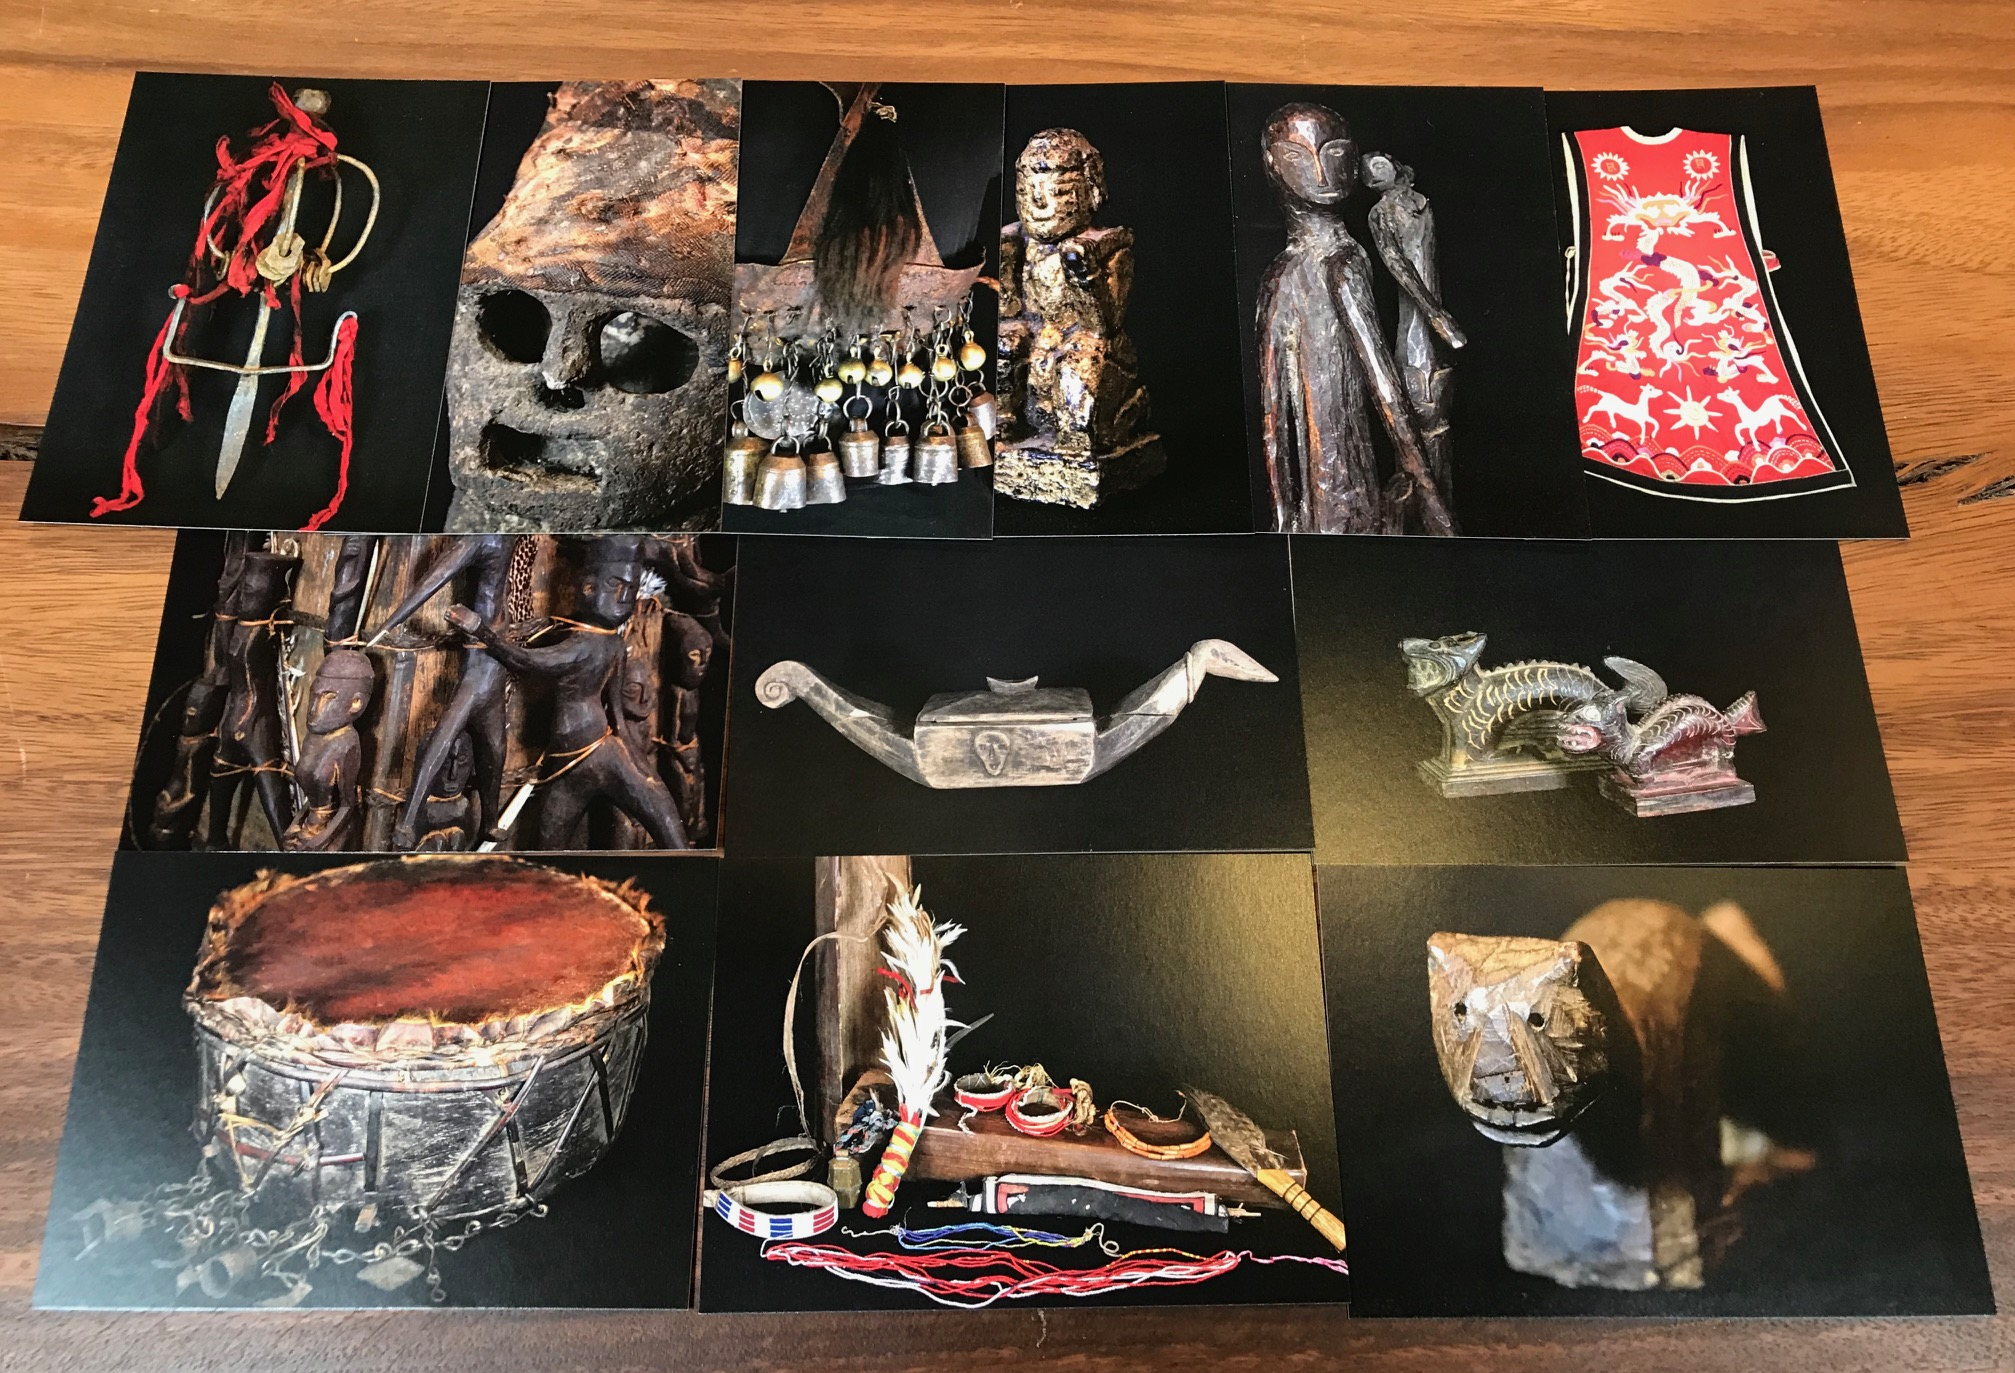 Postcards of selected pieces from the Shamanic Objects exhibition at David Alan Collection. they are a collection of pieces from Nepal, Vietnam , Myanmar and from several different islands in Indonesia. They are all authentic, rare objects used by Shaman priests for healing and for other various tribal rituals performed for the good of the community